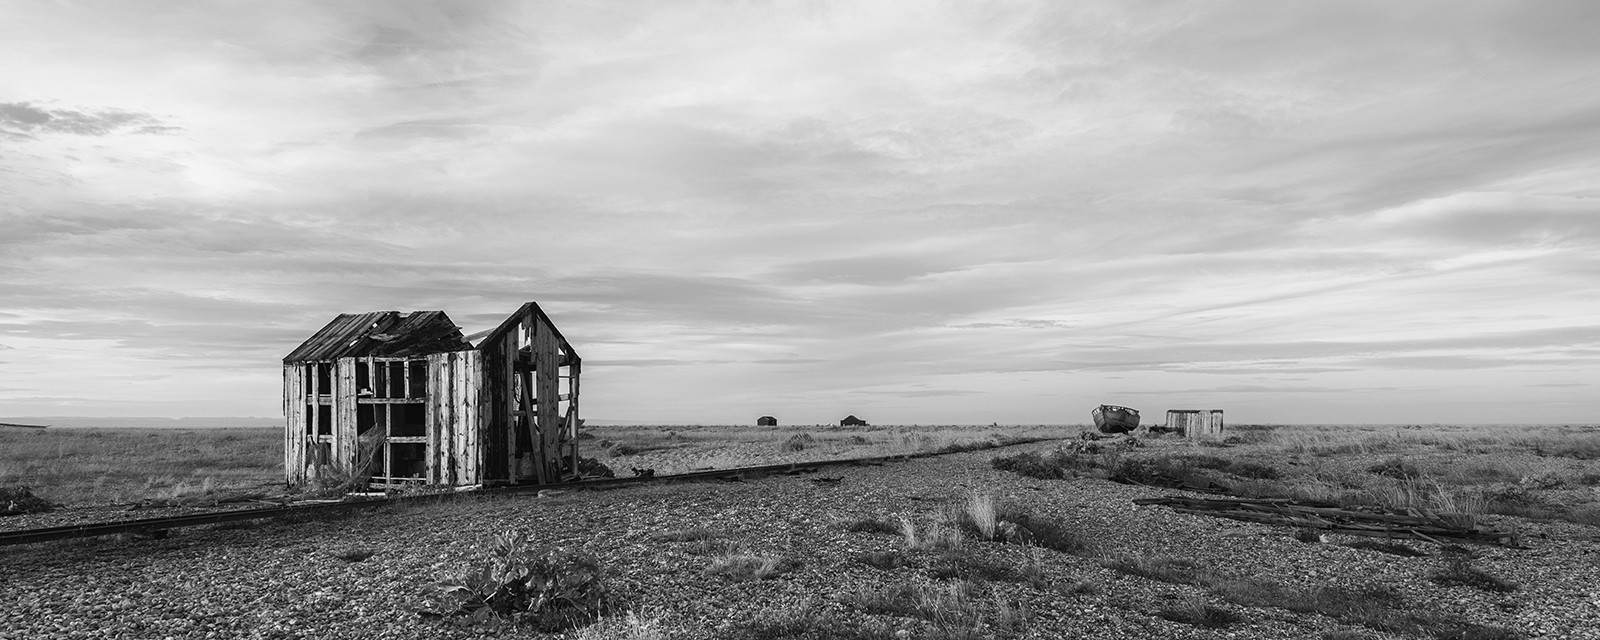 MONO - Desolate (Dungeness) by Pete Irvine (10.5 marks)